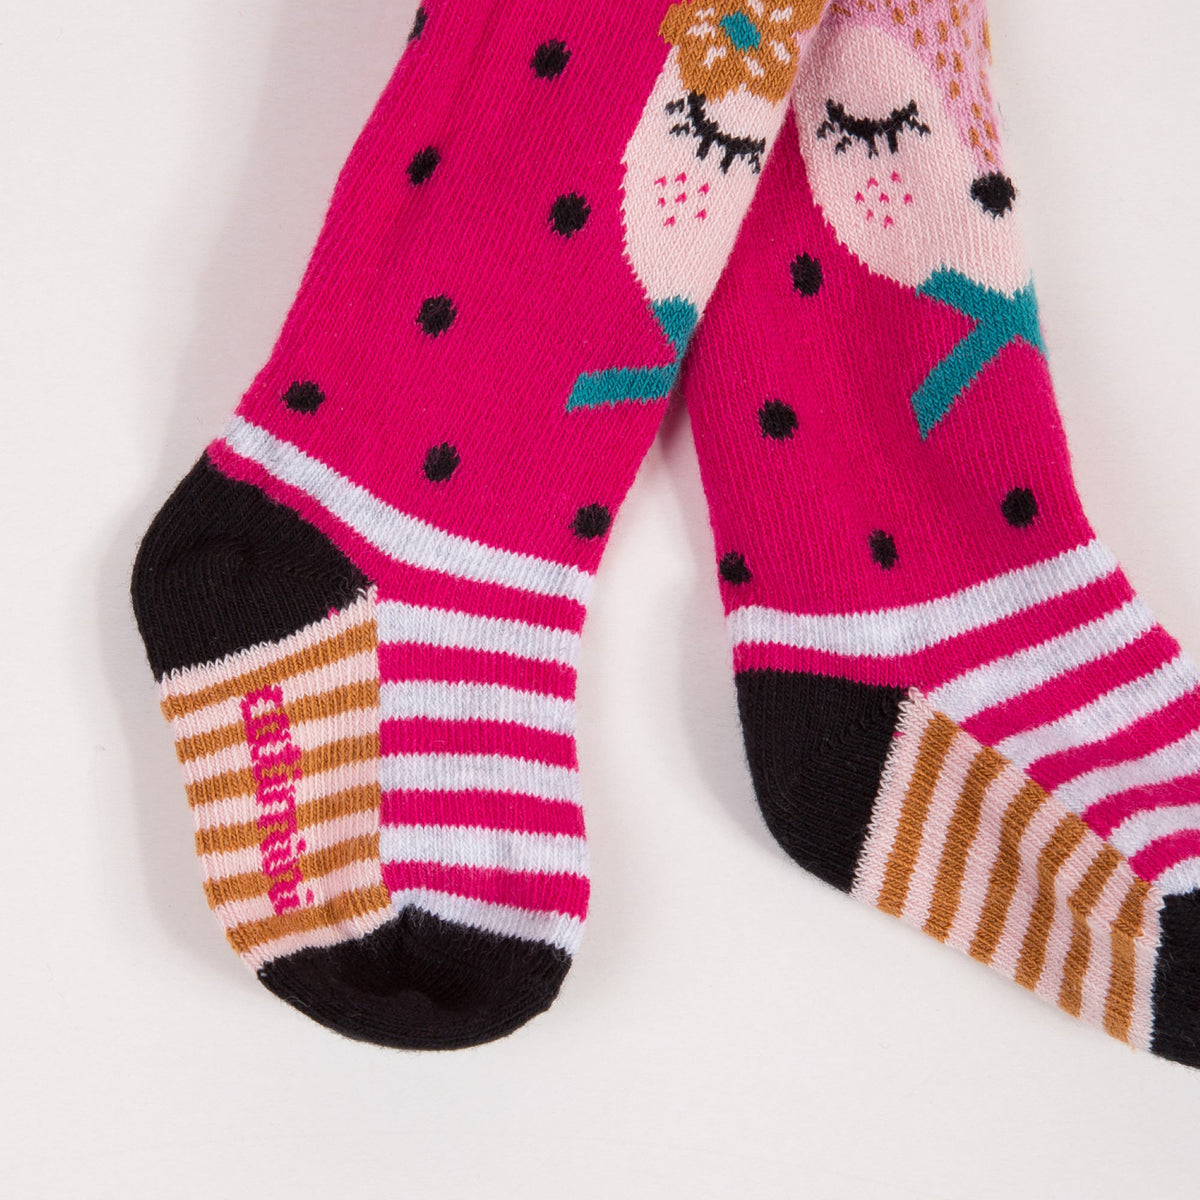 Ultra-soft knitted tights. charming little fawn has quietly fallen asleep on baby's spotted peony pink tights. Catimini design.